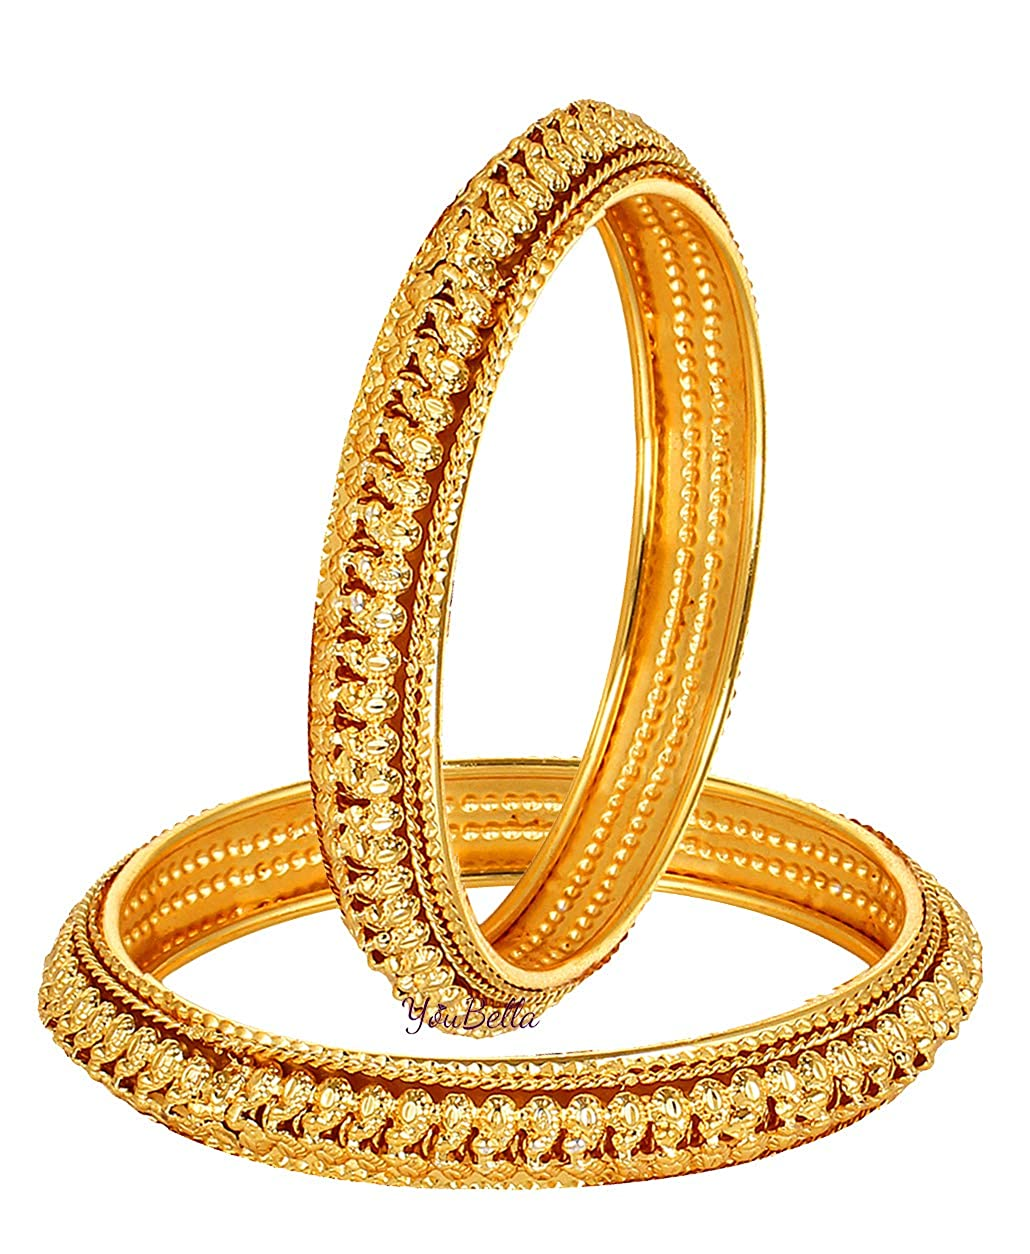 4f2a5d46fdfd6 YouBella Gold Plated Bangles Jewellery for Girls and Women